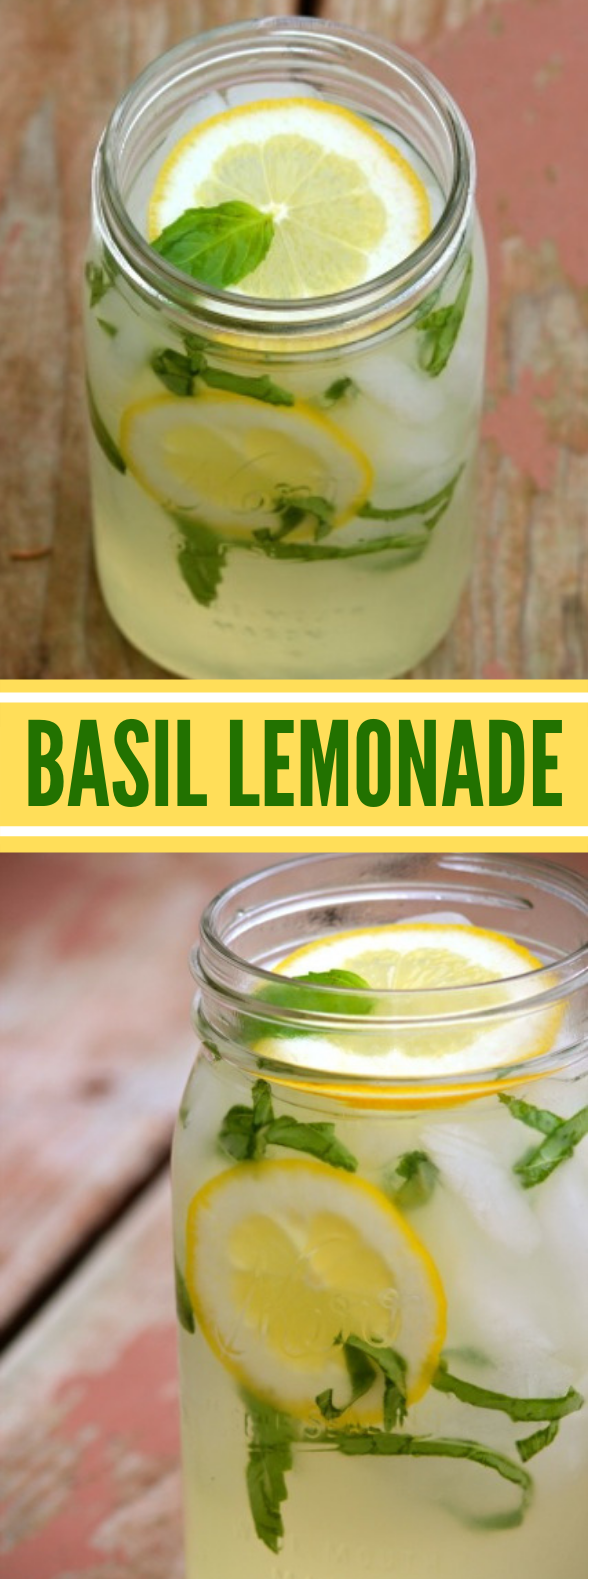 Basil Lemonade #drinks #summer